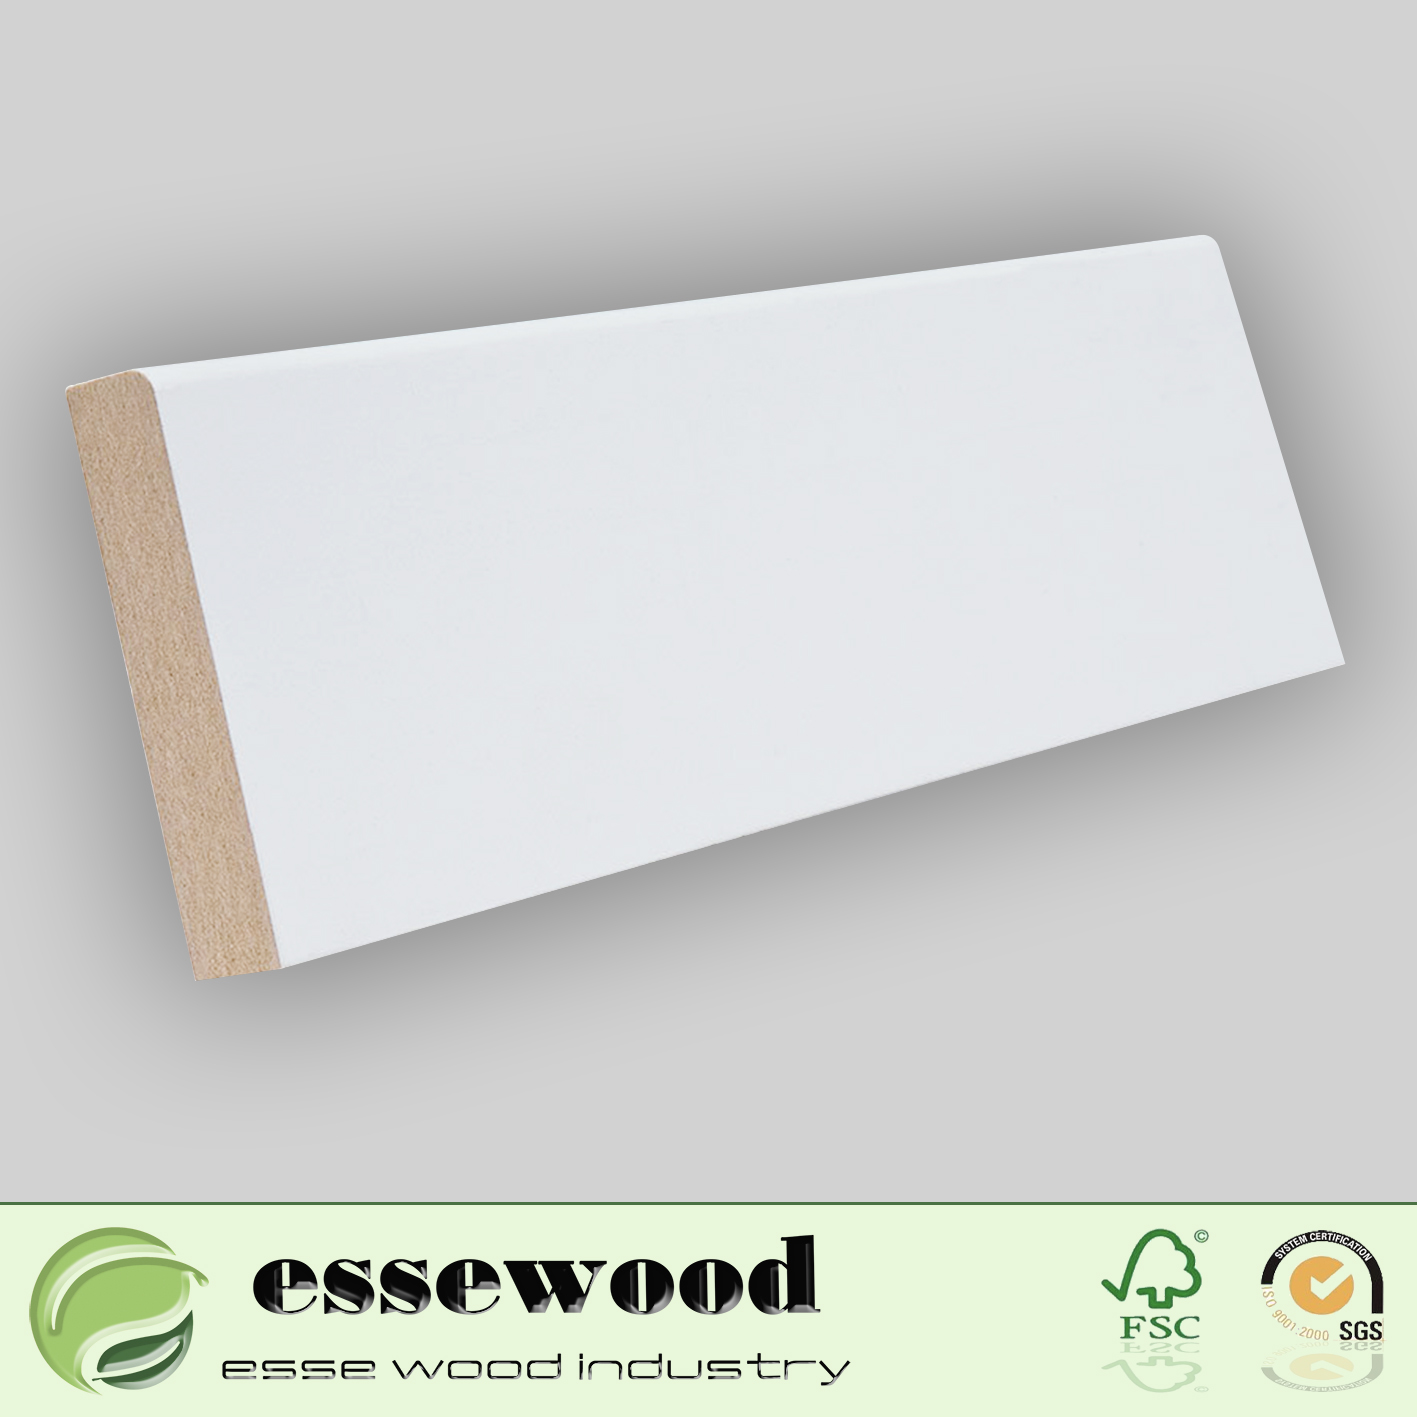 Primed Decorative Wood Moulding MDF Moulding